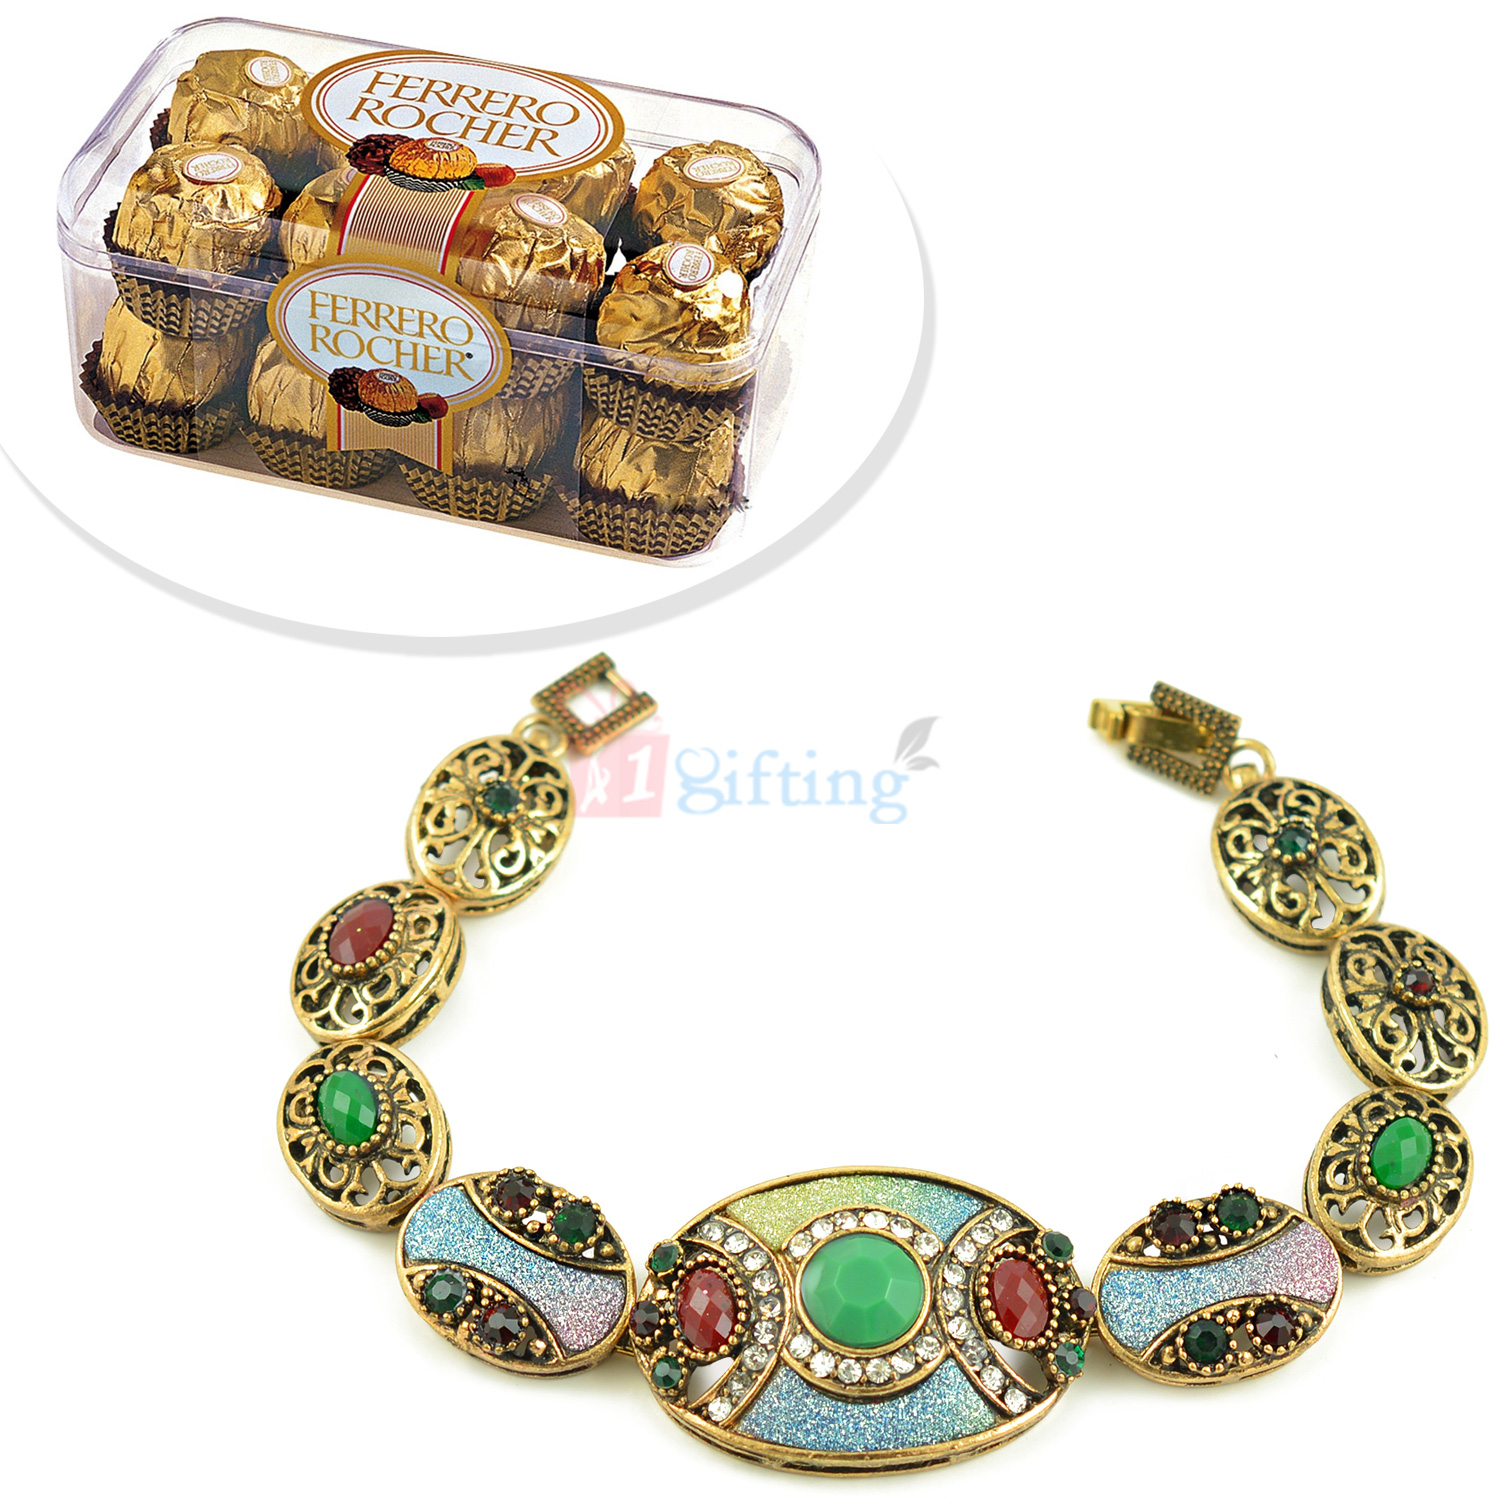 Awesome Antique Bracelet with T16 Ferrero Rocher